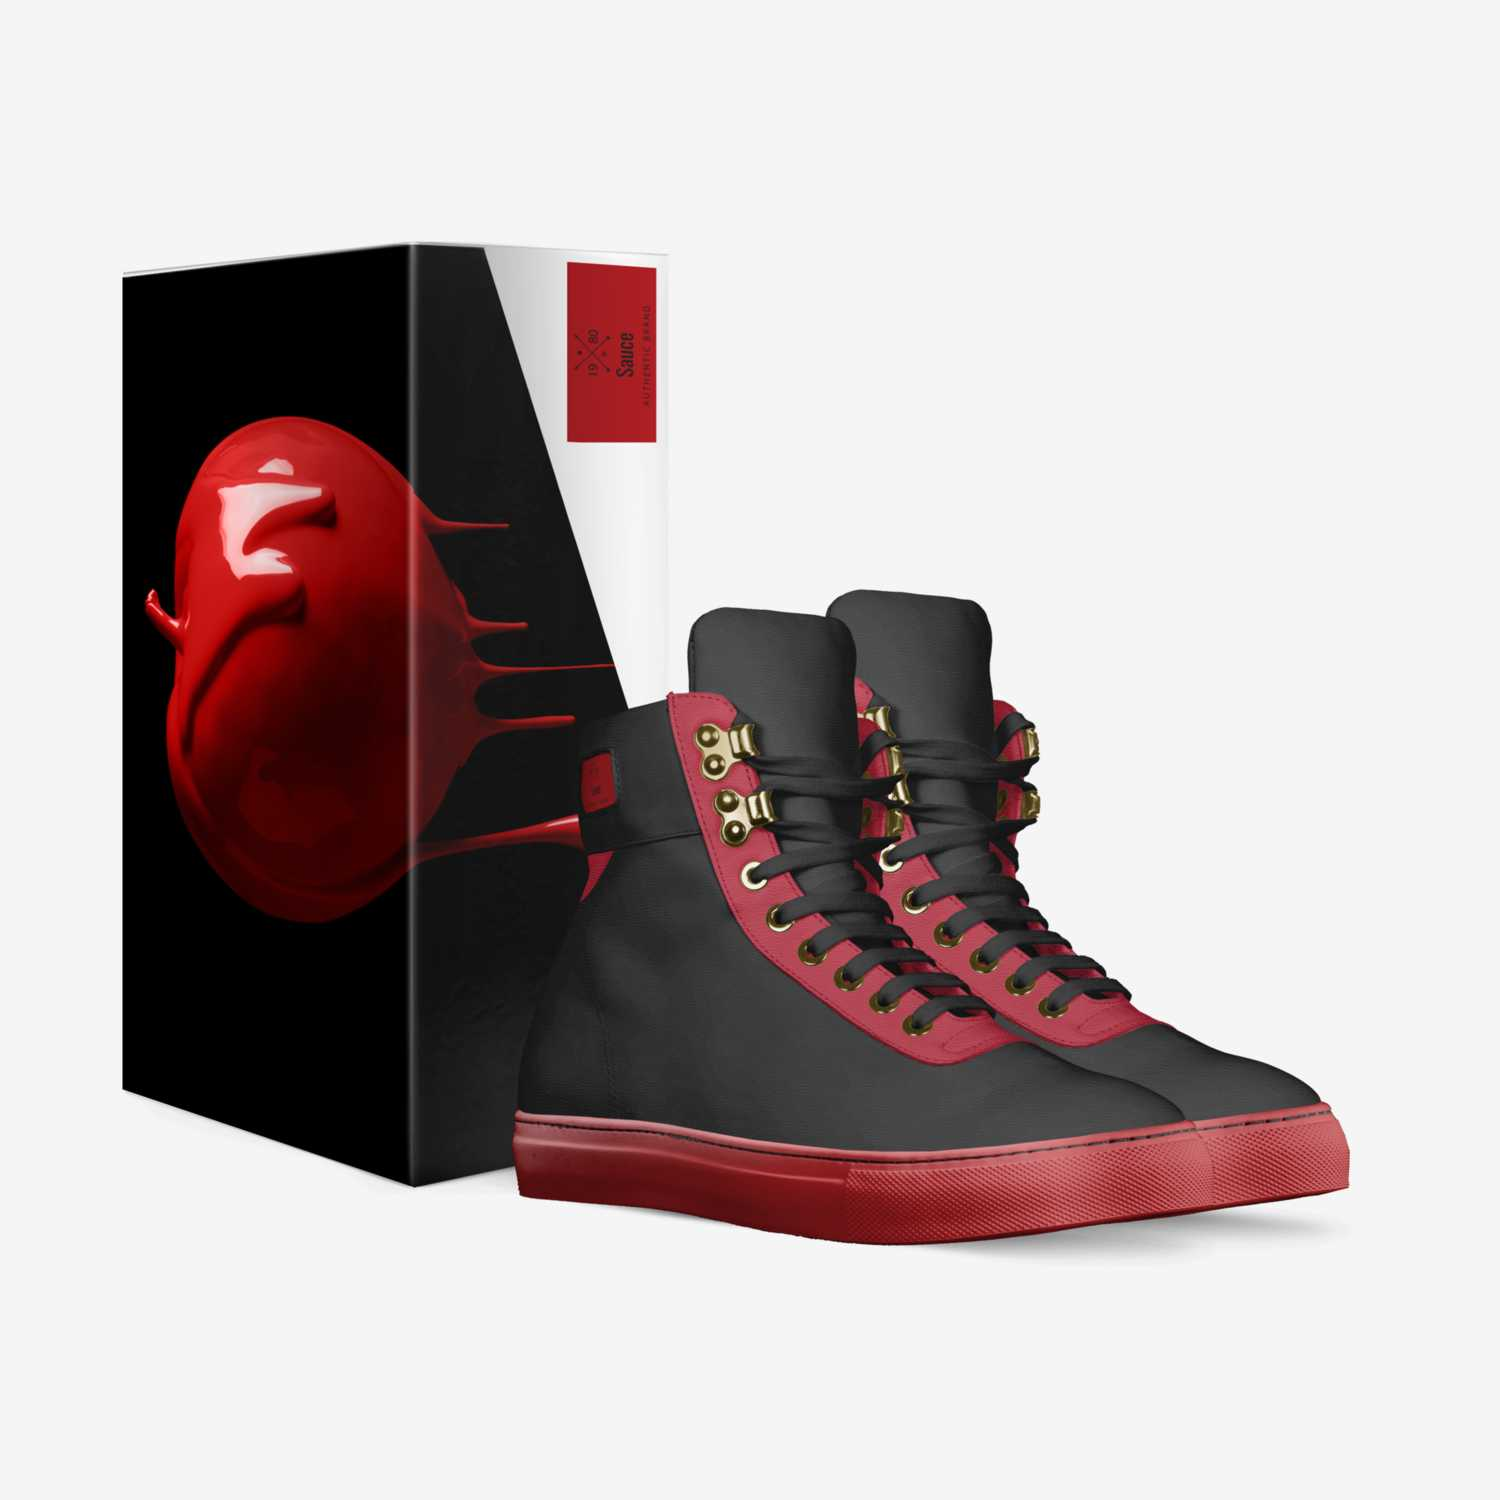 Sauce custom made in Italy shoes by Yahkov Kenaan | Box view